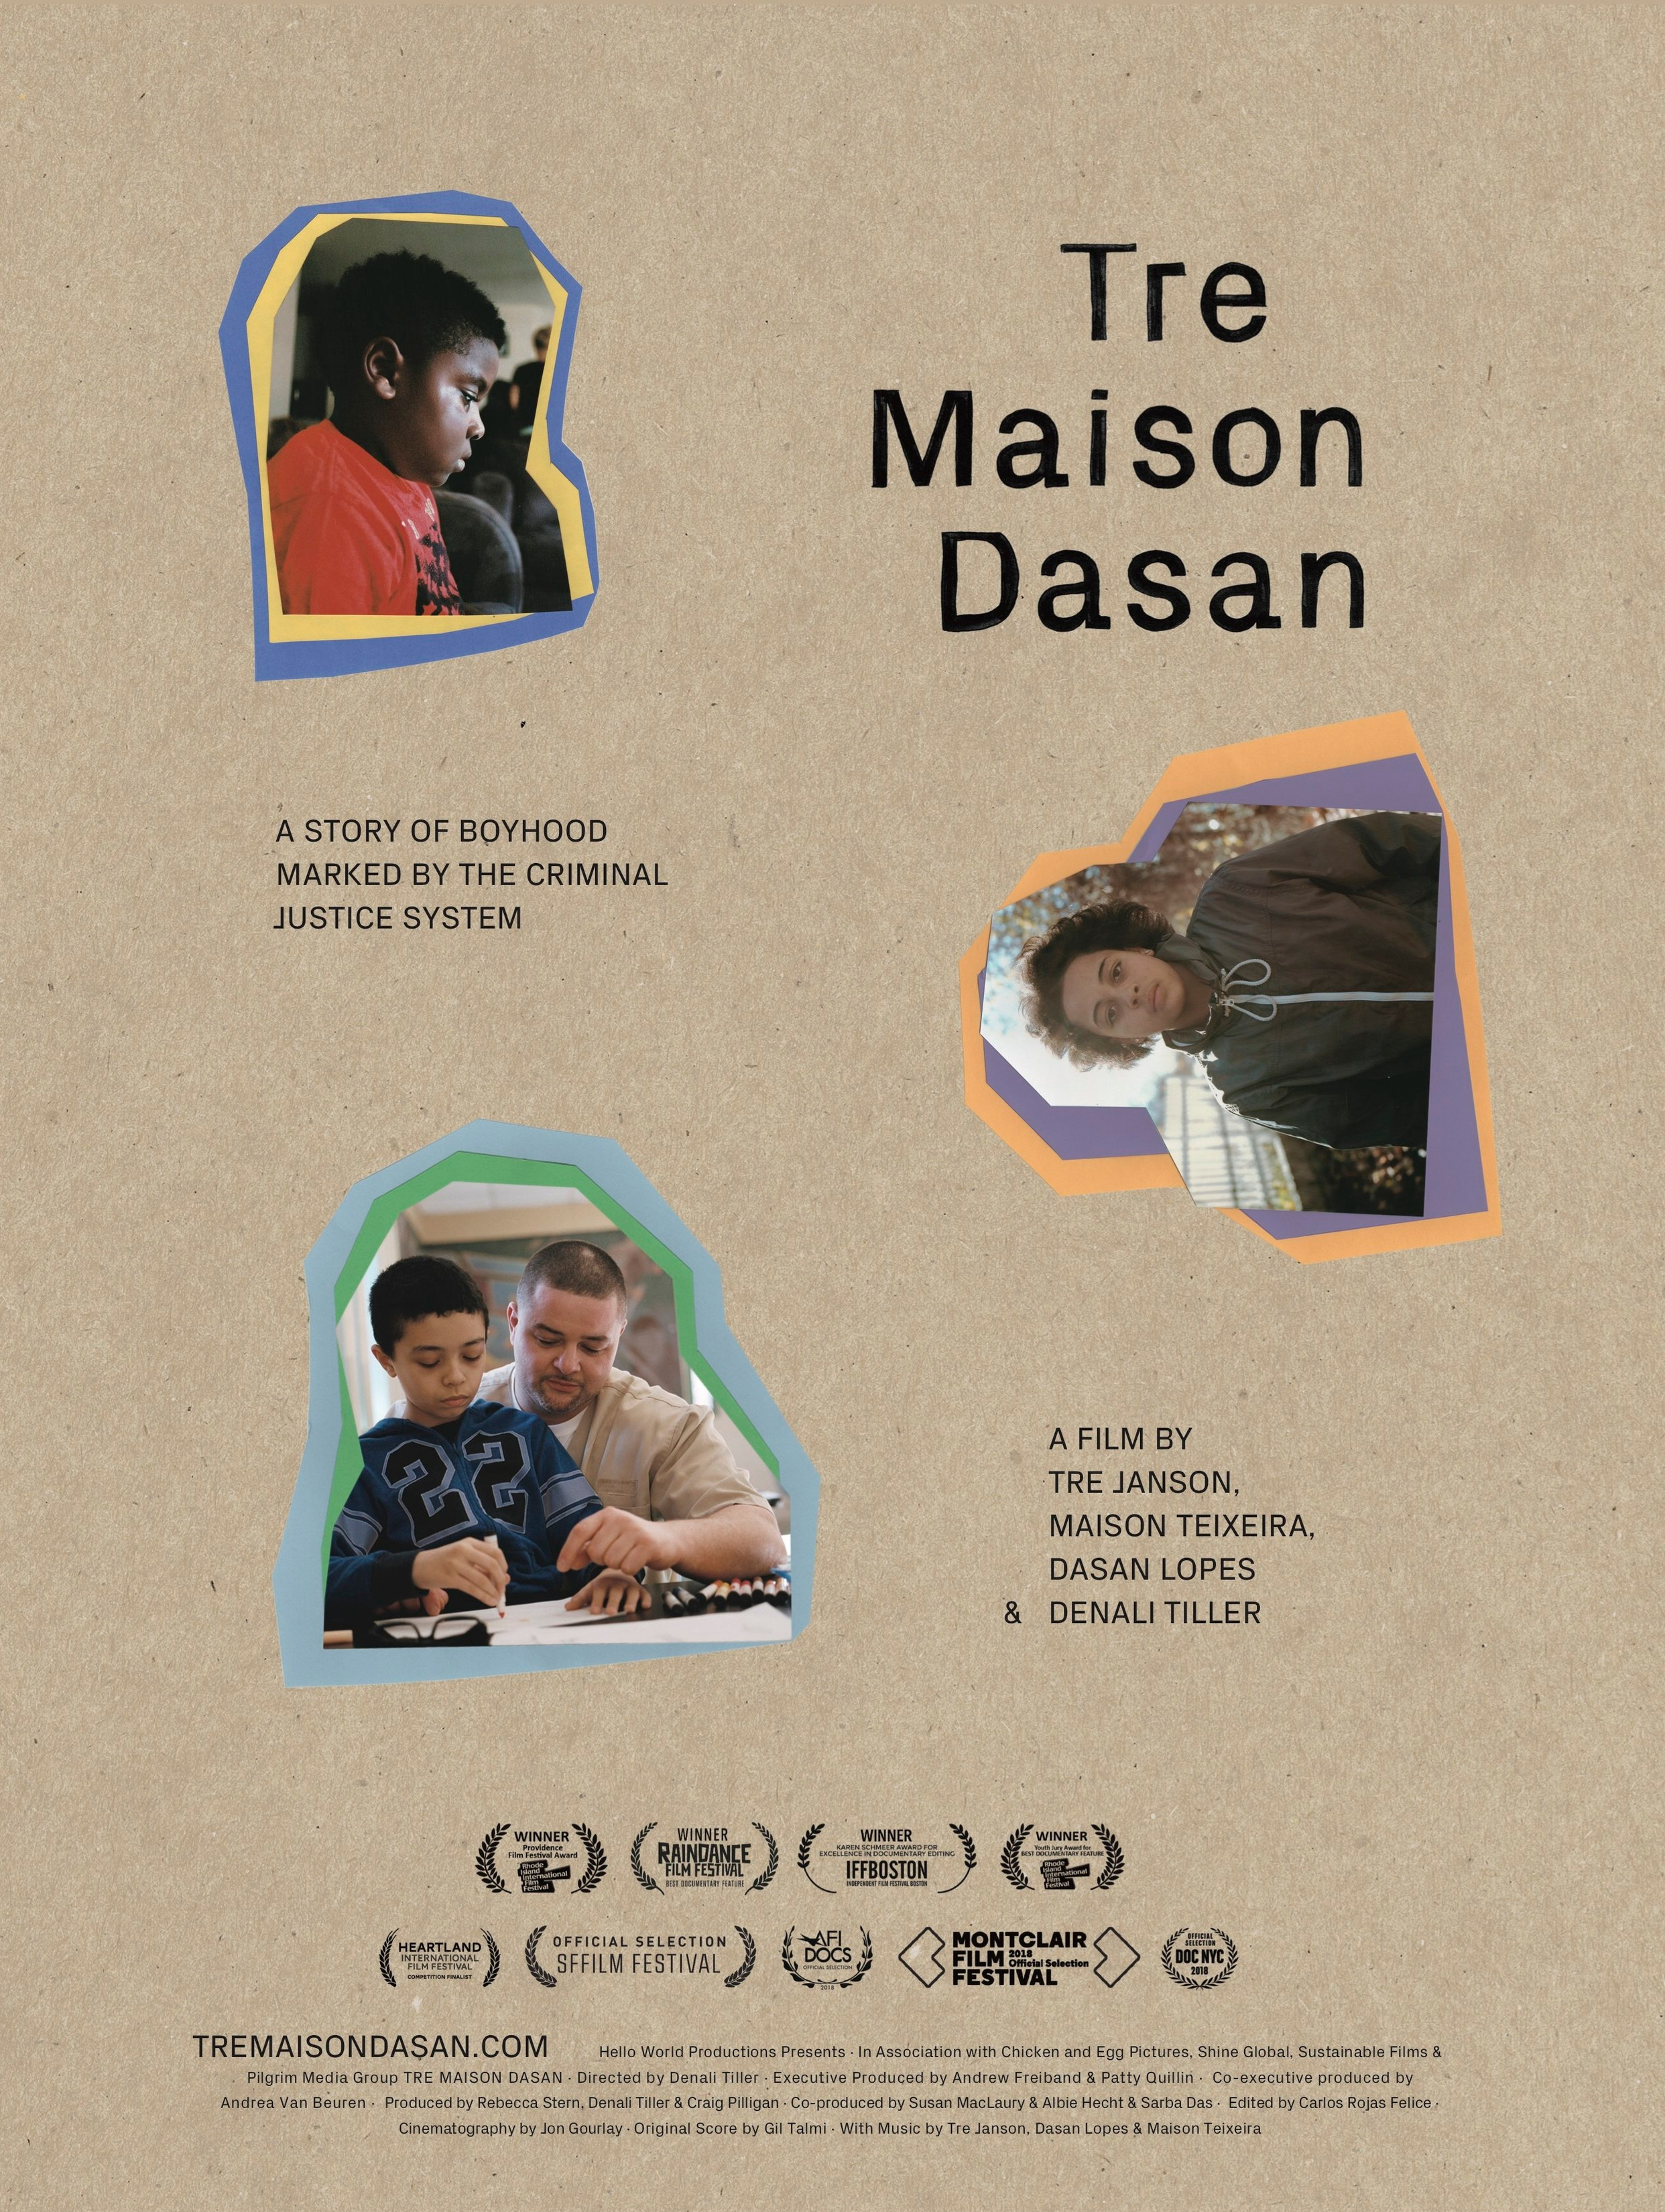 Tre Maison Dasan - Tre Maison Dasan is an award-winning, feature length documentary following three boys growing up, each with a parent in prison. Directly told through the child's perspective, the film is an exploration of relationships and separation, masculinity, and coming of age in America when a parent is behind bars.Supported by Chicken and Egg Pictures, the LEF Foundation, Shine Global Inc, and Pilgrim Media Group, the film premiered at the San Francisco International Film Festival in 2018, was an Official Selection at festivals including Montclair Film Festival, AFI Docs, DOCNYC, and has won numerous awards including Best Feature Documentary at Raindance Film Festival in 2018, best Editing at IFF Boston and and Best Directing at the Olympia Film Festival for Children and Young People in Greece. The film premiered on PBS / INDEPENDENT LENS in April, 2019.More at www.tremaisondasan.com